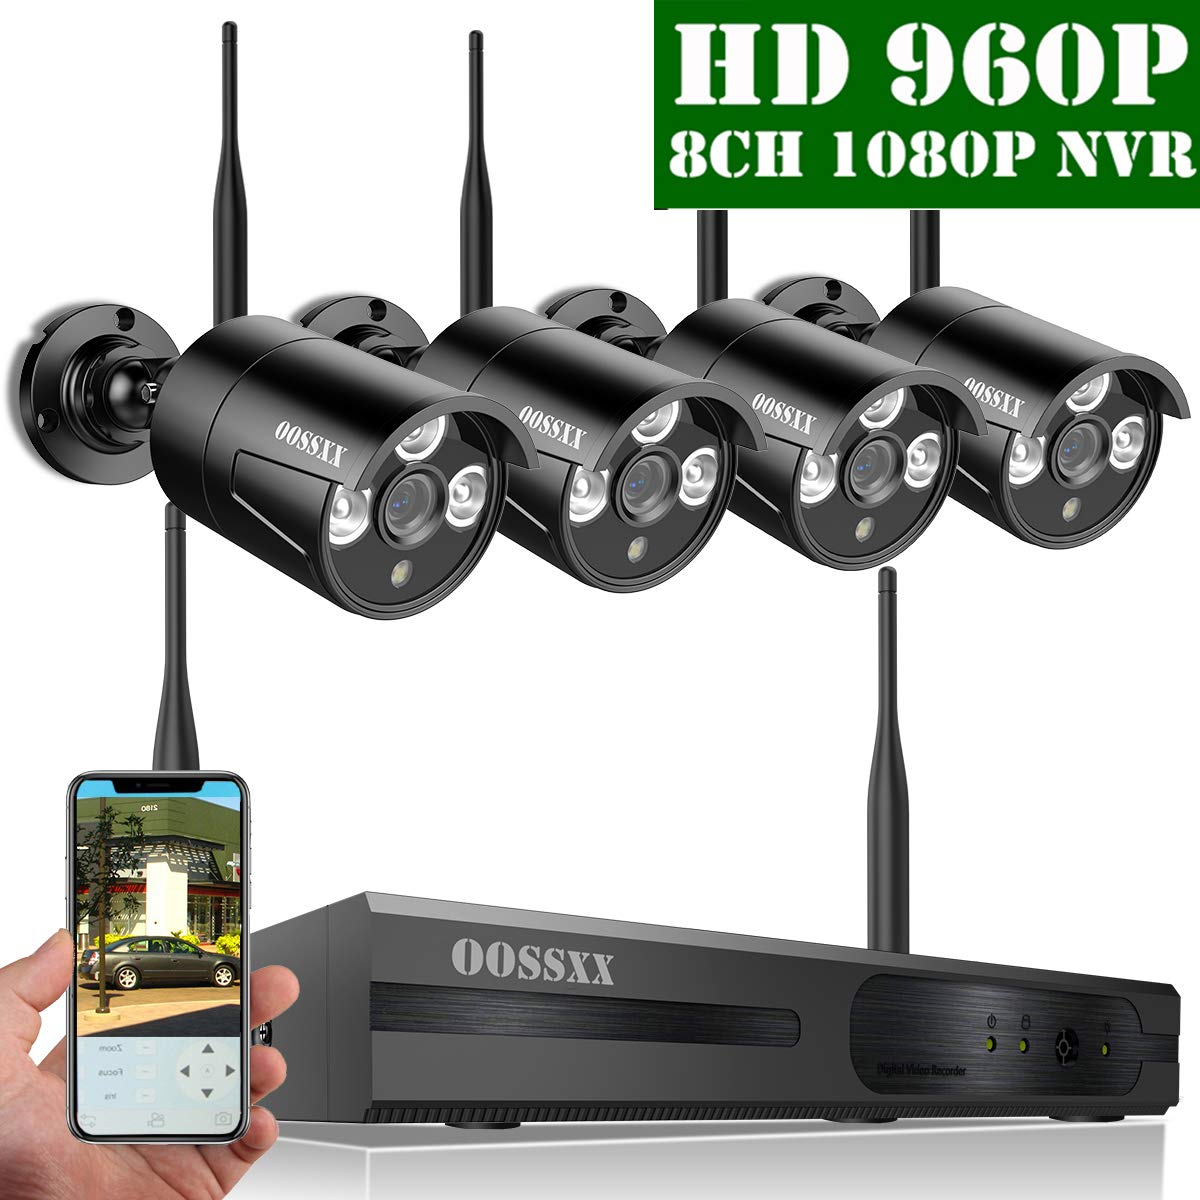 【2019 Update】 OOSSXX HD 1080P 8-Channel Wireless Security Camera System,4 pcs 960P 1.3 Megapixel Wireless Weatherproof Bullet IP Cameras,Plug Play,70FT Night Vision,P2P,App, No Hard Drive by OOSSXX